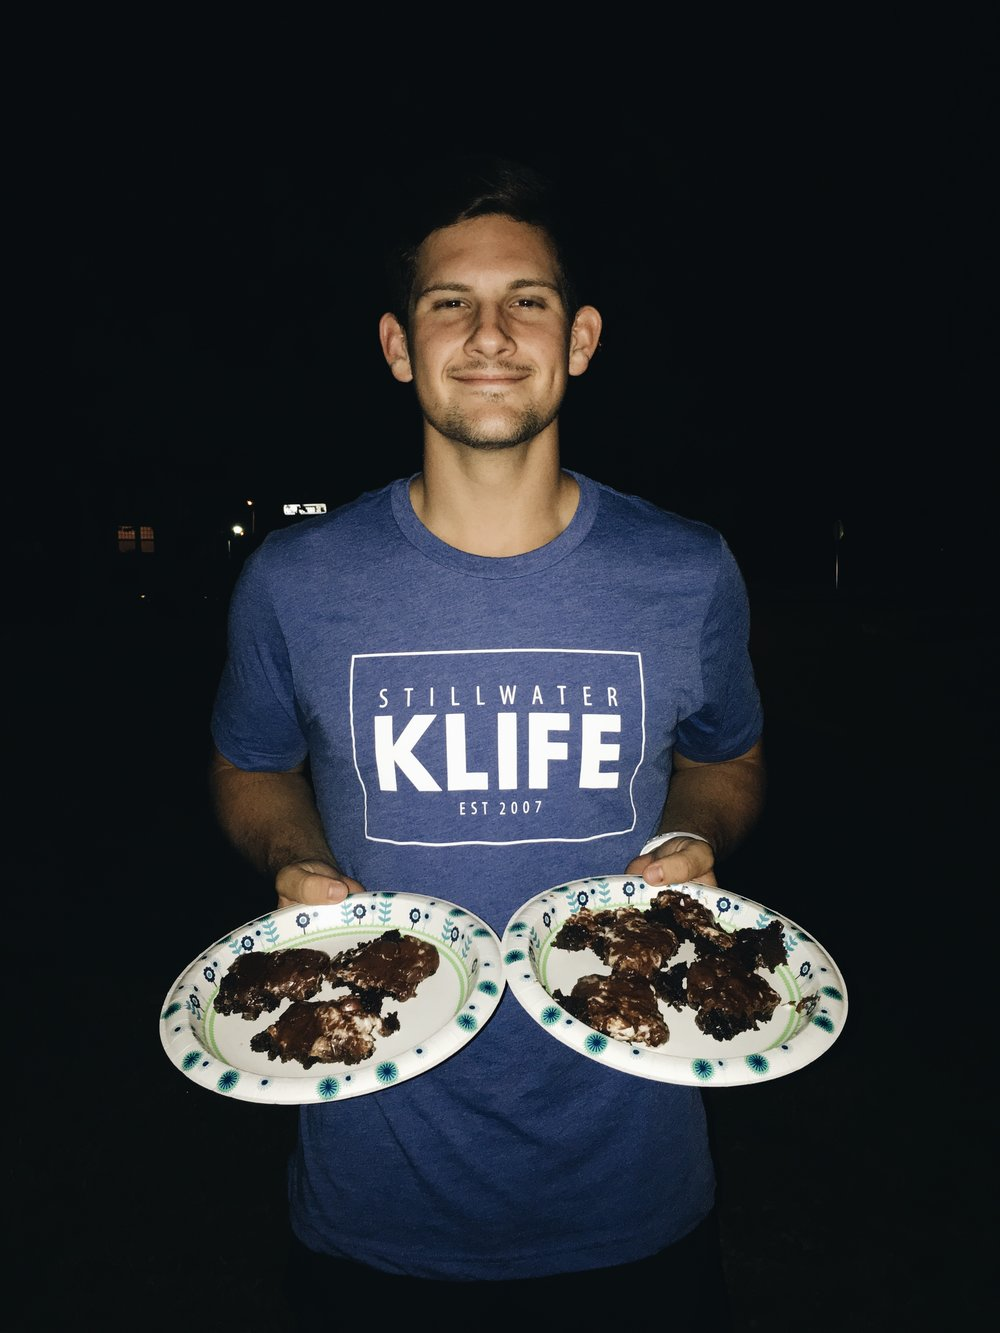 Cooper and I made Mississippi mud pies (brownies with marshmallows and chocolate icing) one evening and brought the around to our pals in Stilly.